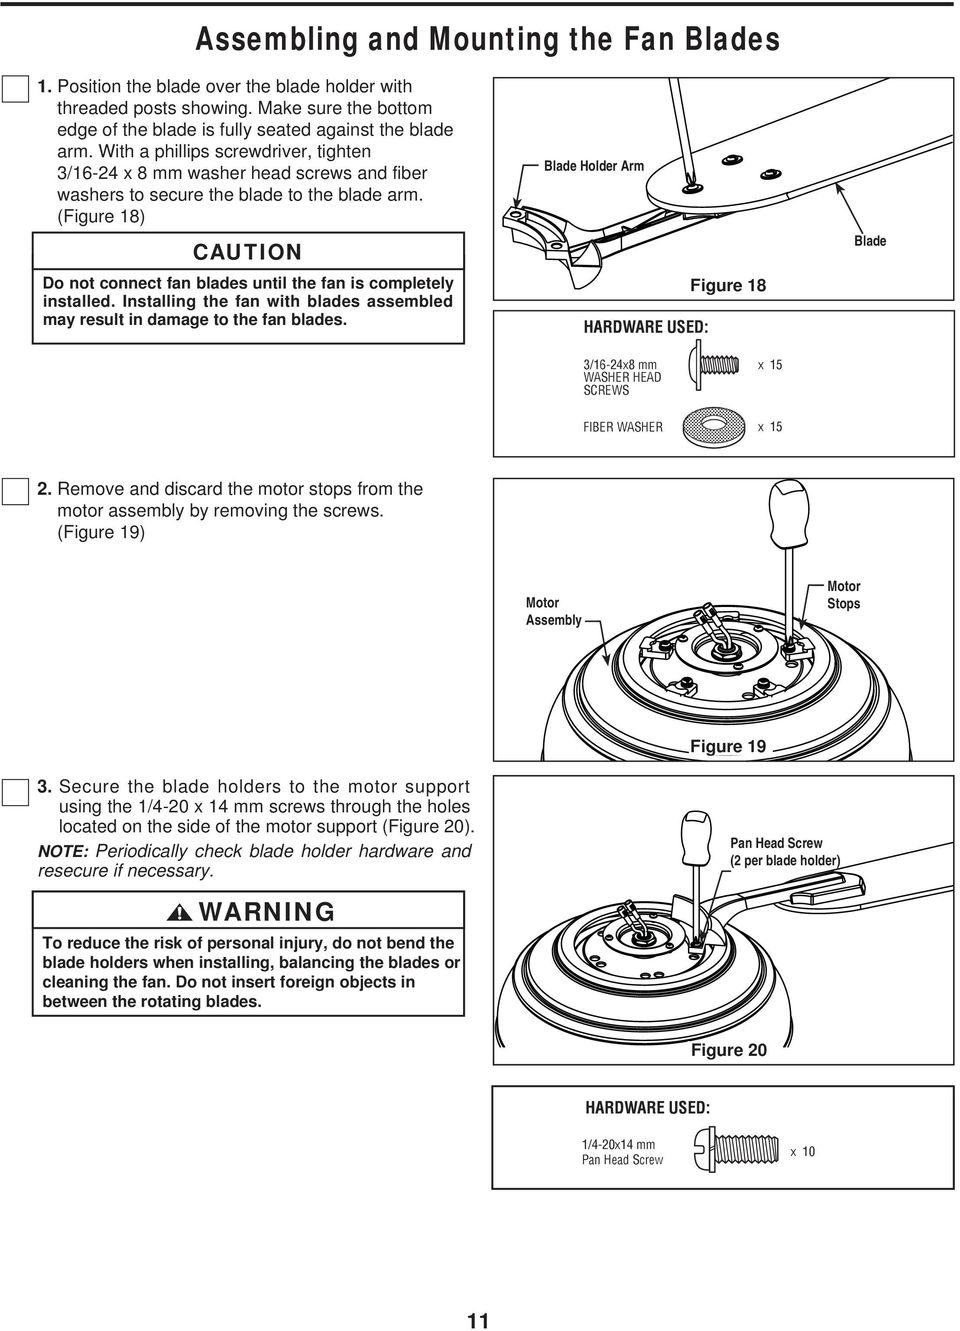 (Figure 18) CAUTION Do not connect fan blades until the fan is completely installed. Installing the fan with blades assembled may result in damage to the fan blades.